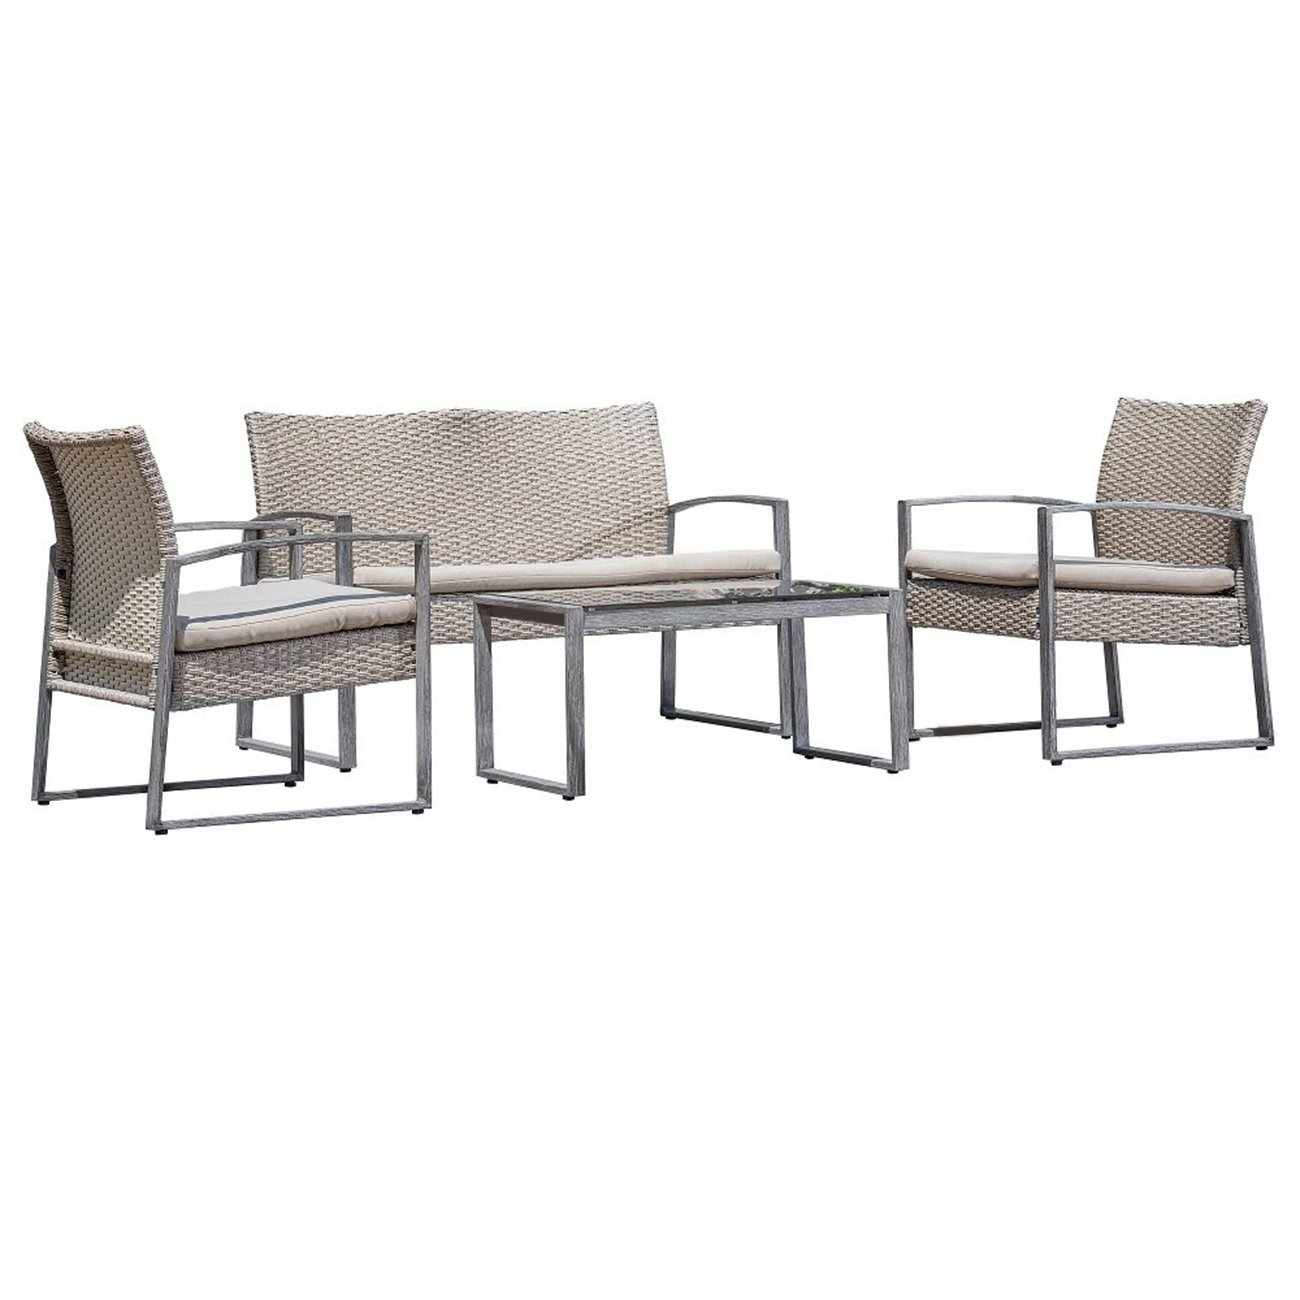 Outdoor Patio Furniture Set Cushioned 4 Pieces Wicker Patio Set Table, Two Chairs and a Loveseat Gray Finish with Beige Cushions Outdoor Furniture Lawn Rattan Garden Set